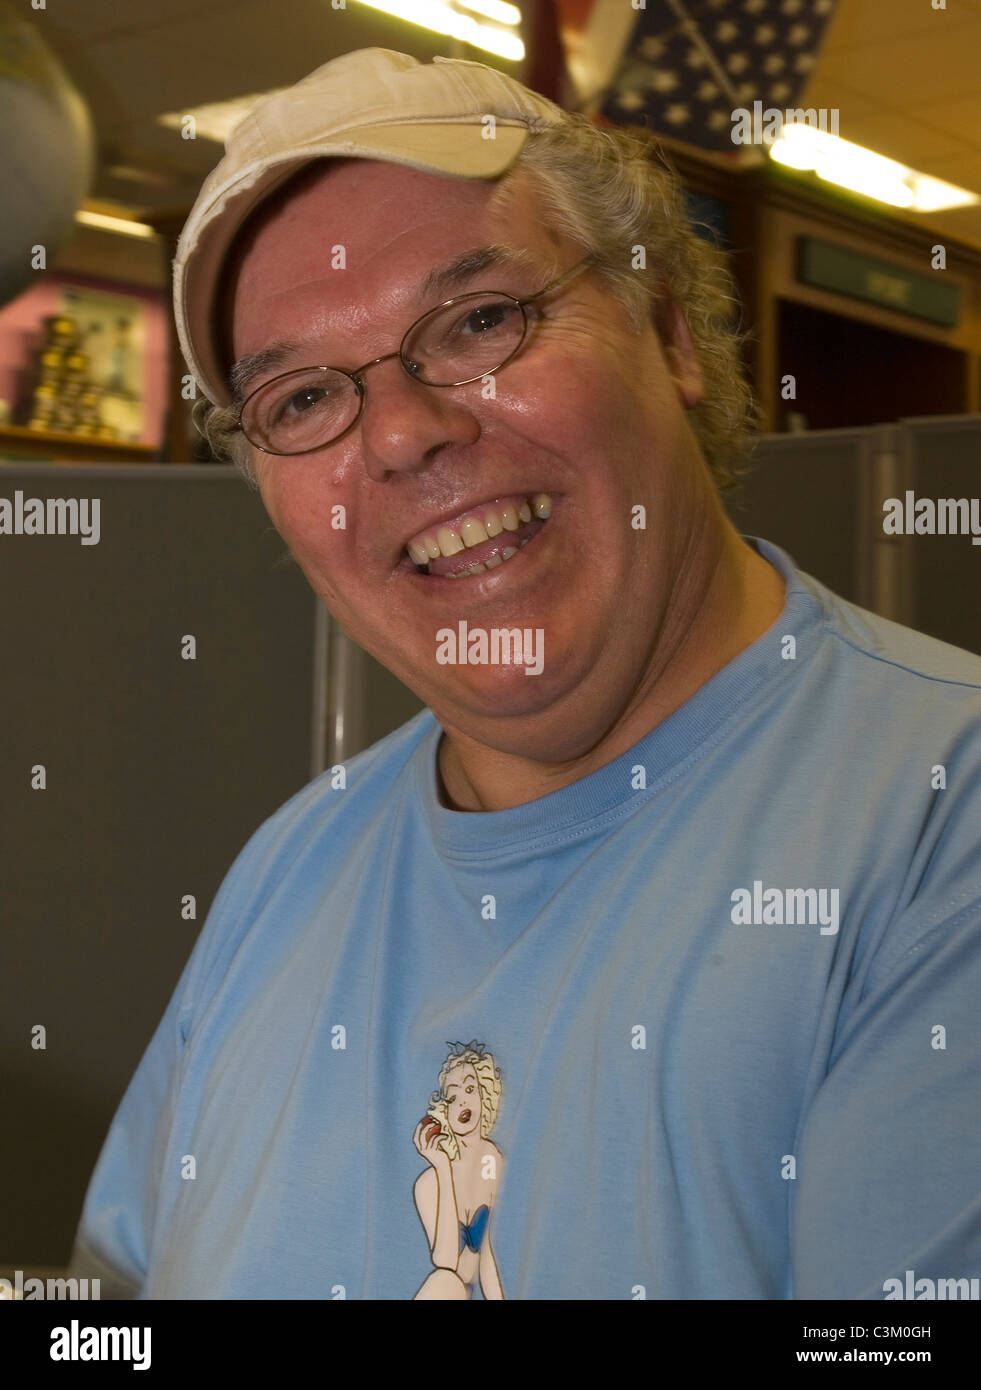 Comedian, Roy 'Chubby' Brown